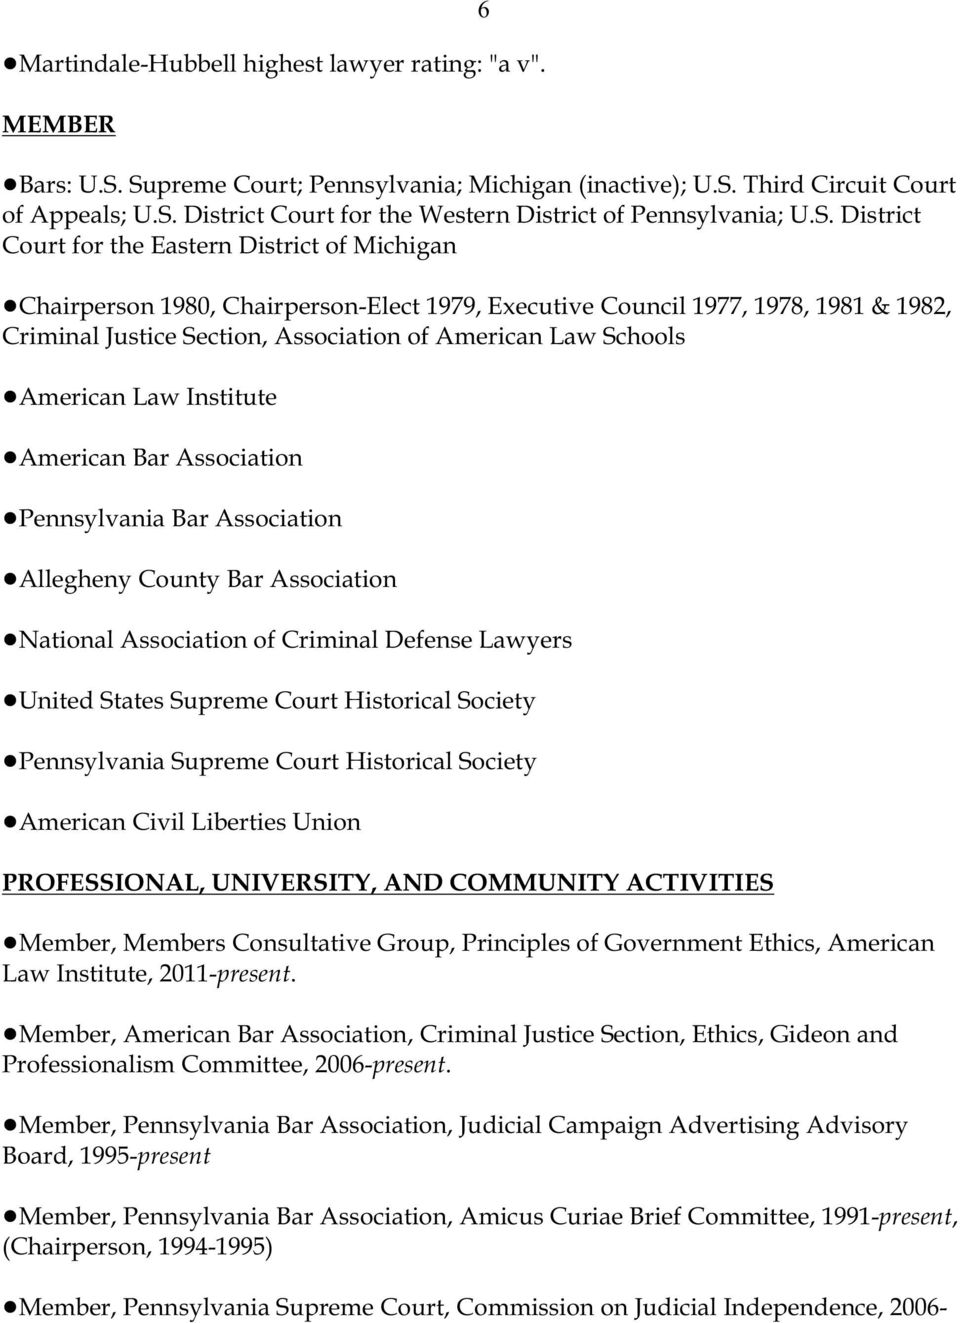 Chairperson 1980, Chairperson-Elect 1979, Executive Council 1977, 1978, 1981 & 1982, Criminal Justice Section, Association of American Law Schools!American Law Institute!American Bar Association!